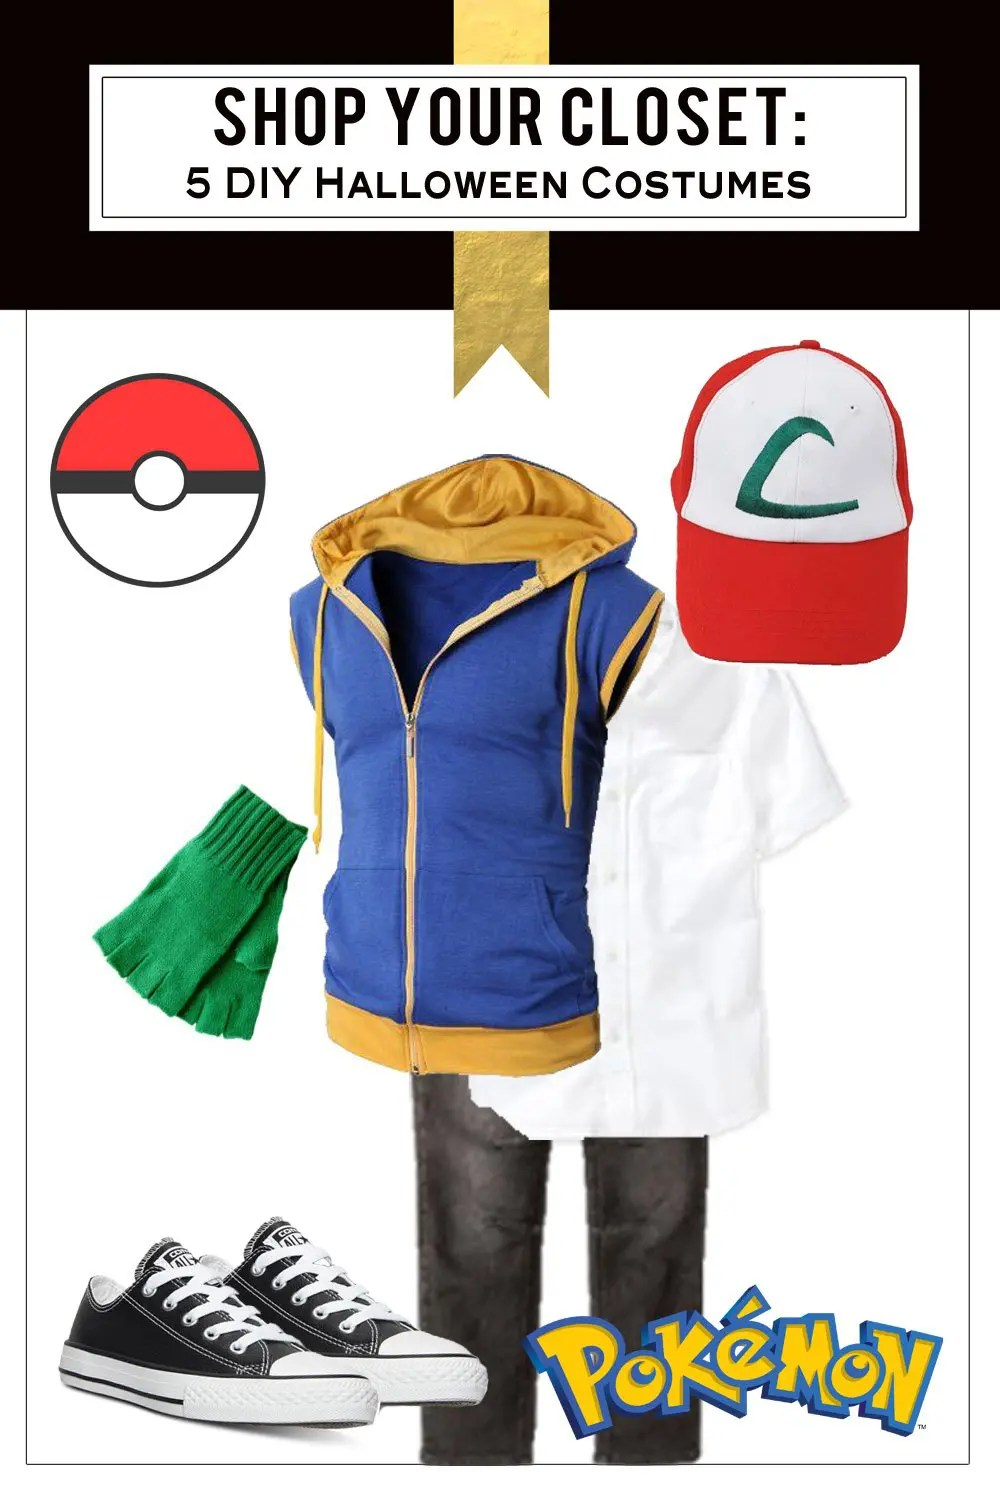 Shop Your Closet for Halloween: 5 Free and Fabulous Costumes Pokemon Ash Ketchum, Suicide Squad Harley Quinn, Game of Thrones Shae and Khaleesi, Happy Love Cat Emoji | Five Marigolds